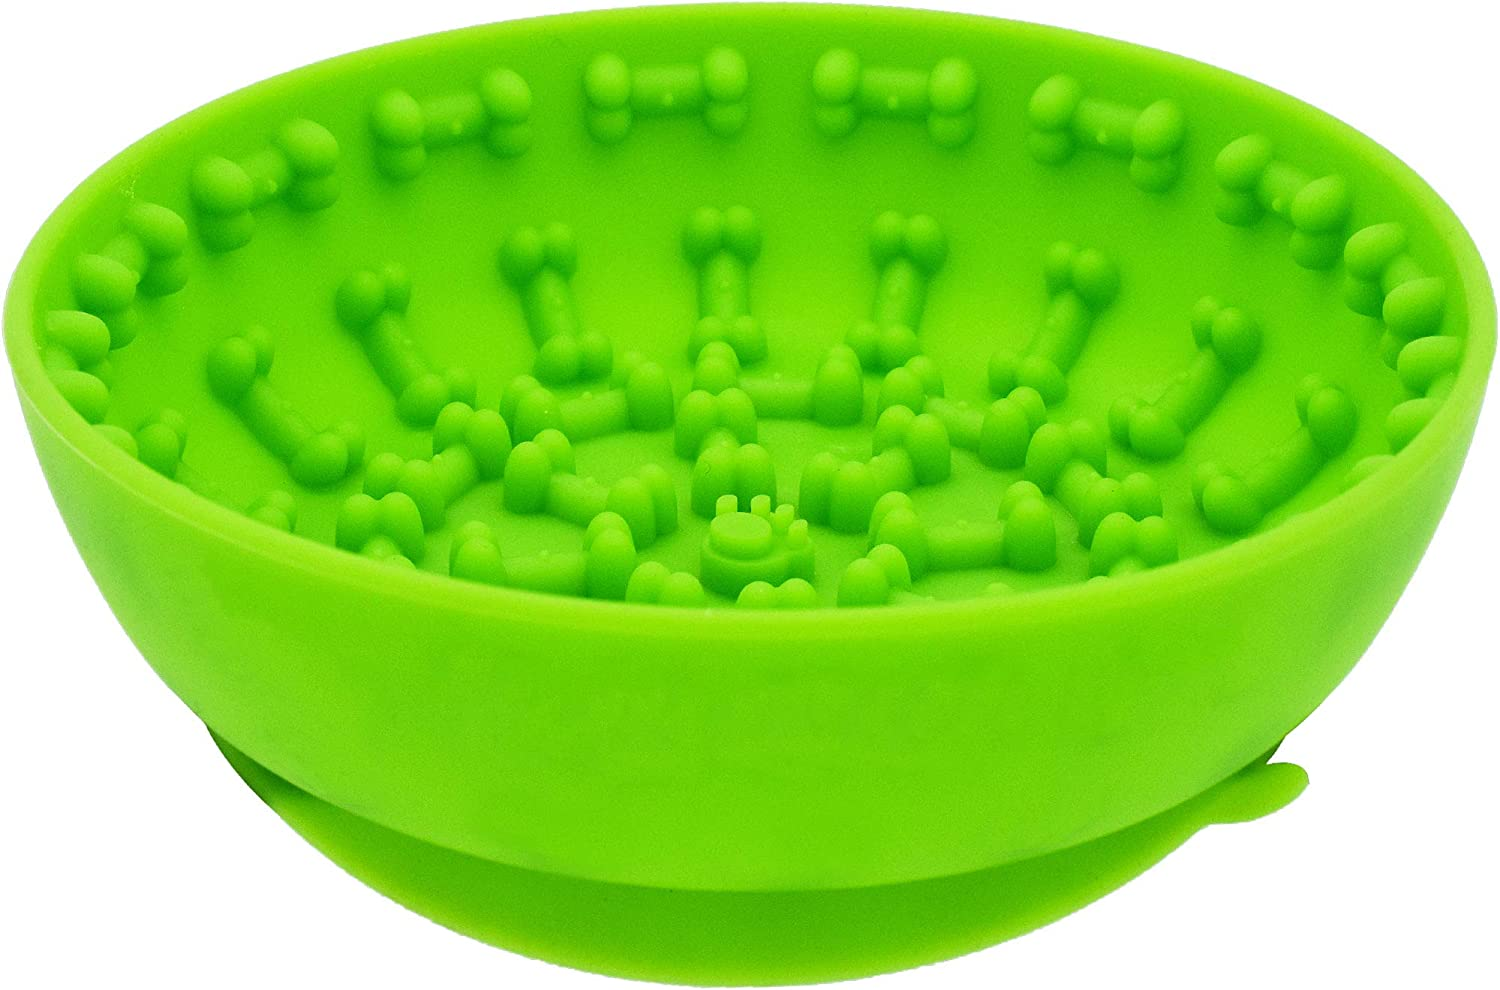 Dog Slow Feeder Bowls ,Non Slip with Suction Cup,Anti-gulping pet Slower Food Feeding Dishes Distracts, Calms Anxiety,Very Suitable for Food Treats Yogurt Peanut Butter (Green)